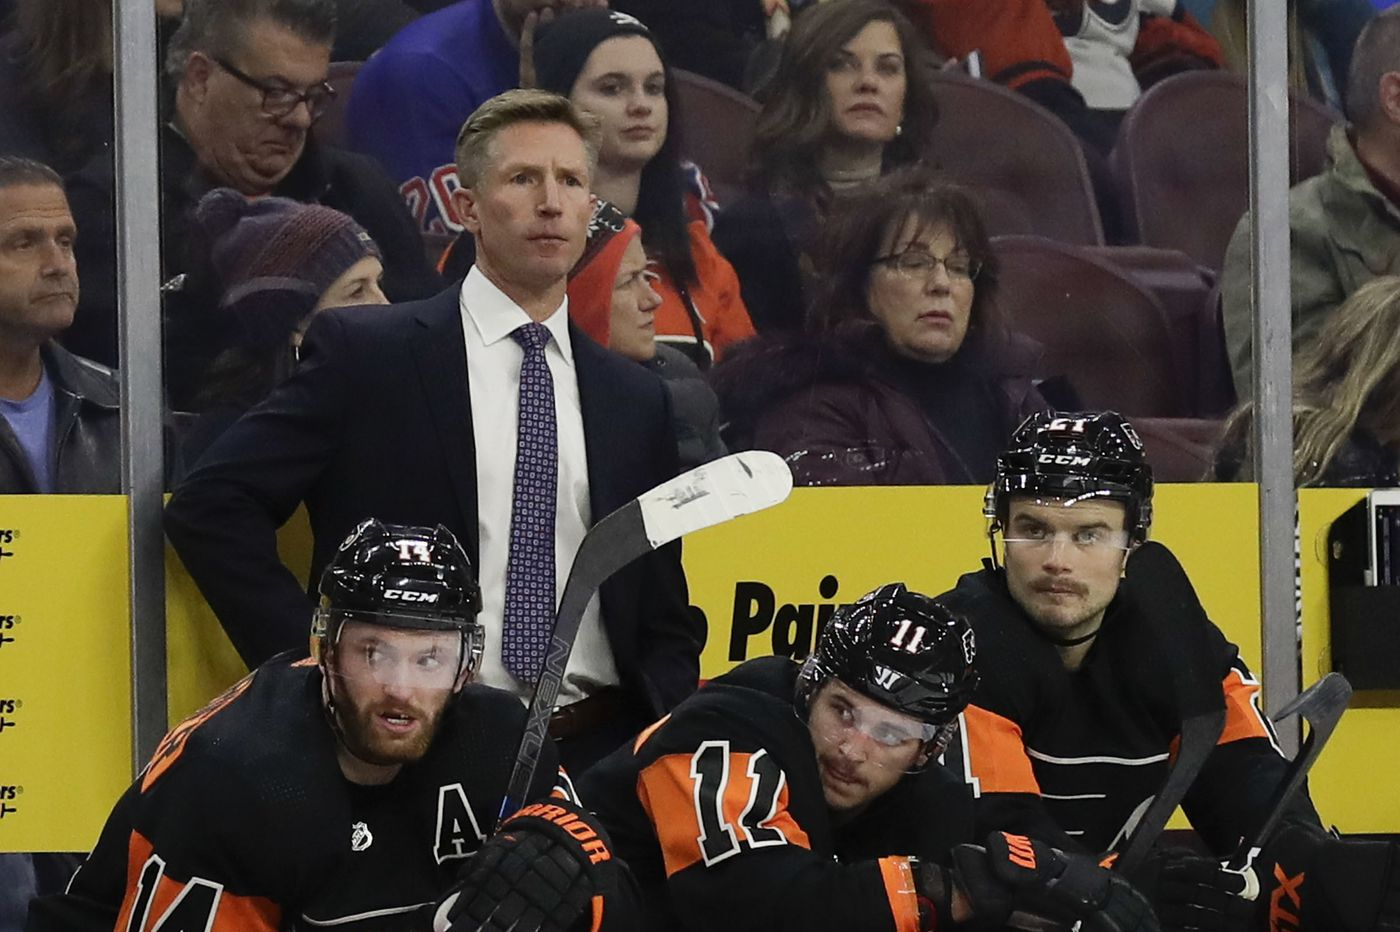 Former Flyers coach Dave Hakstol named an assistant with Toronto Maple Leafs